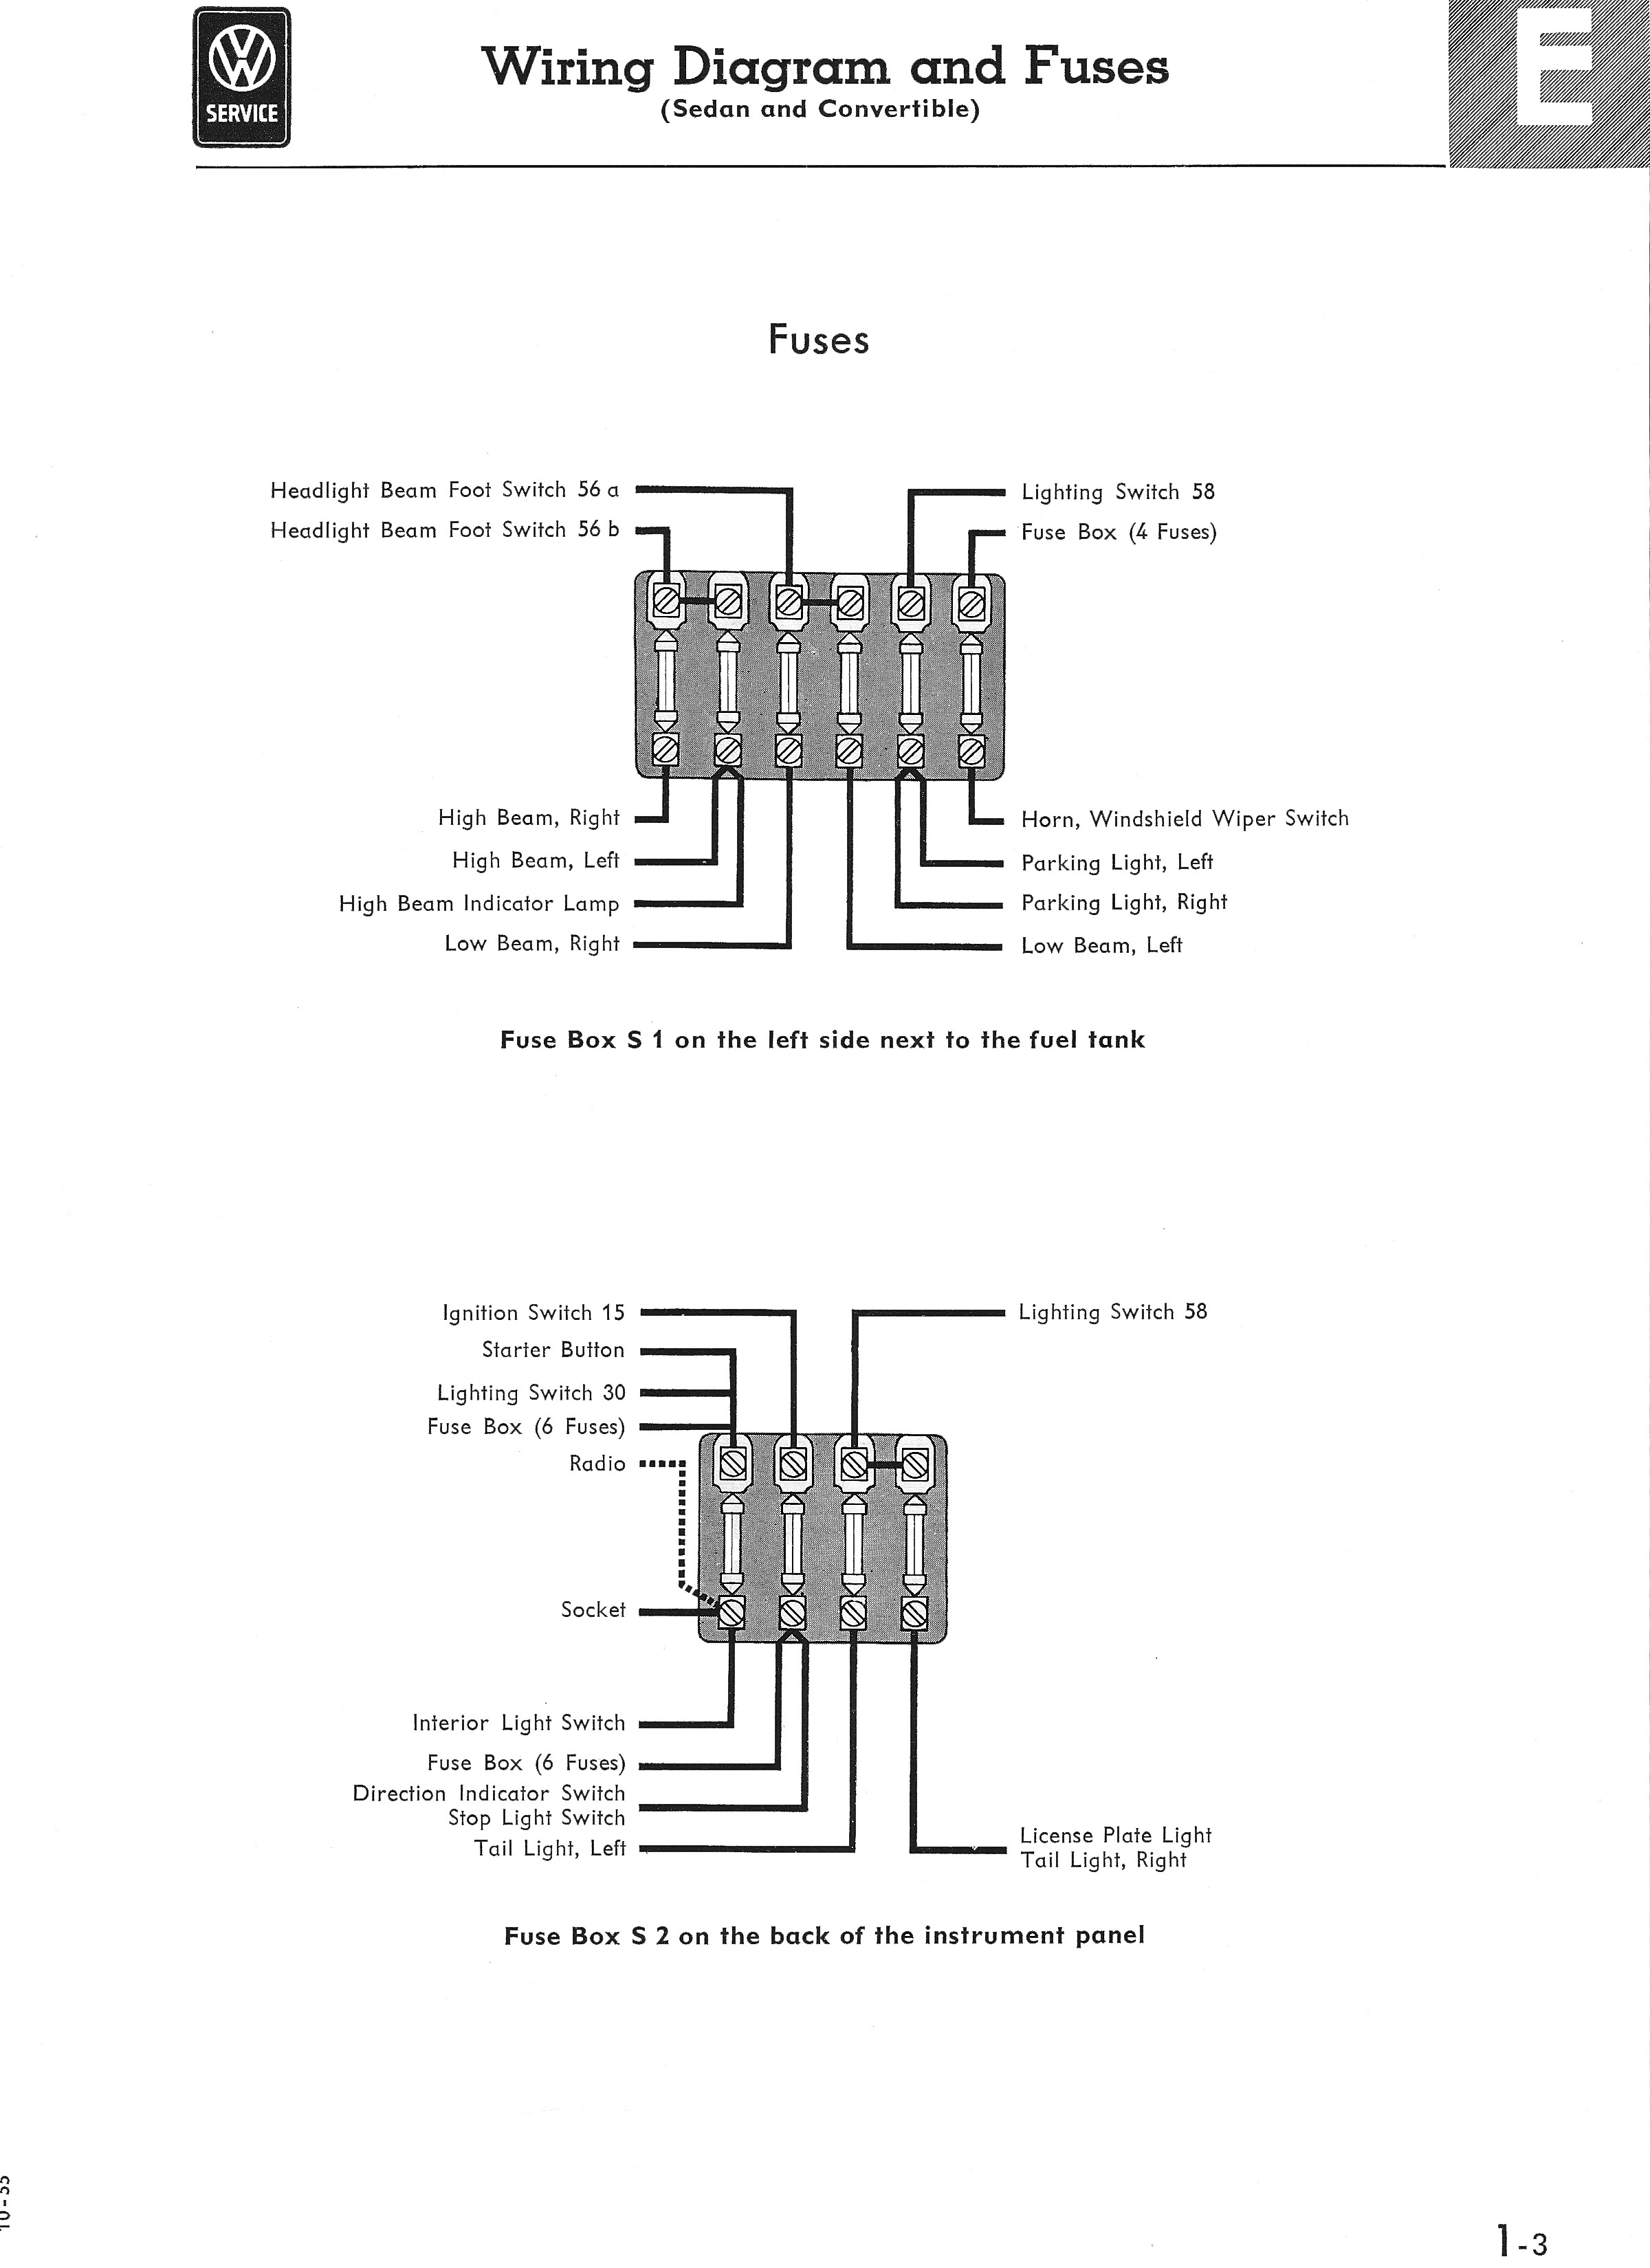 wiring diagram for 1954 chevy bel air 1954 chevy bel air wiring diagrams #5